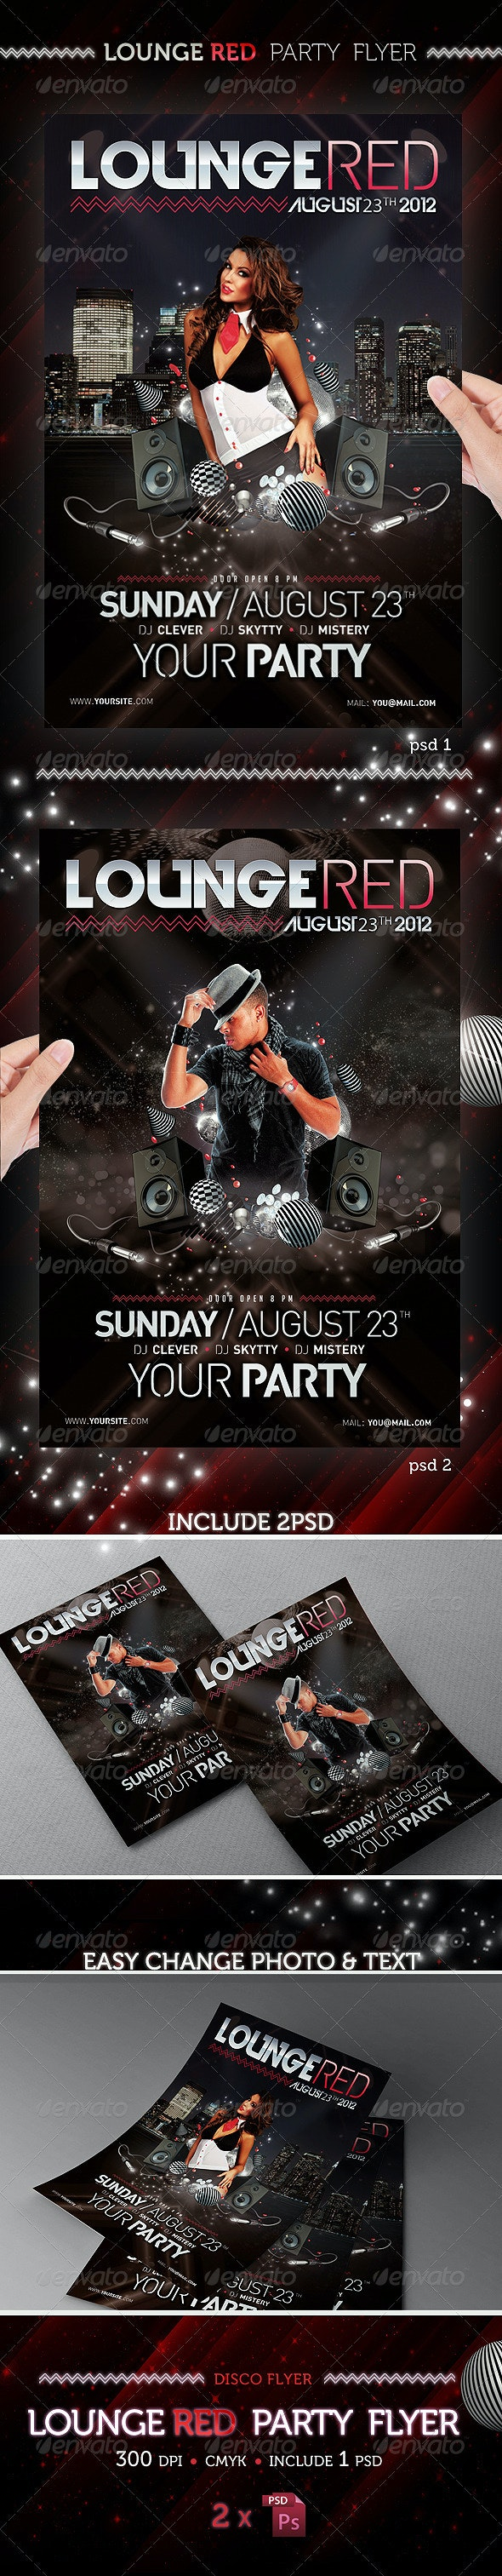 Lounge Red Party Flyer Template - Clubs & Parties Events